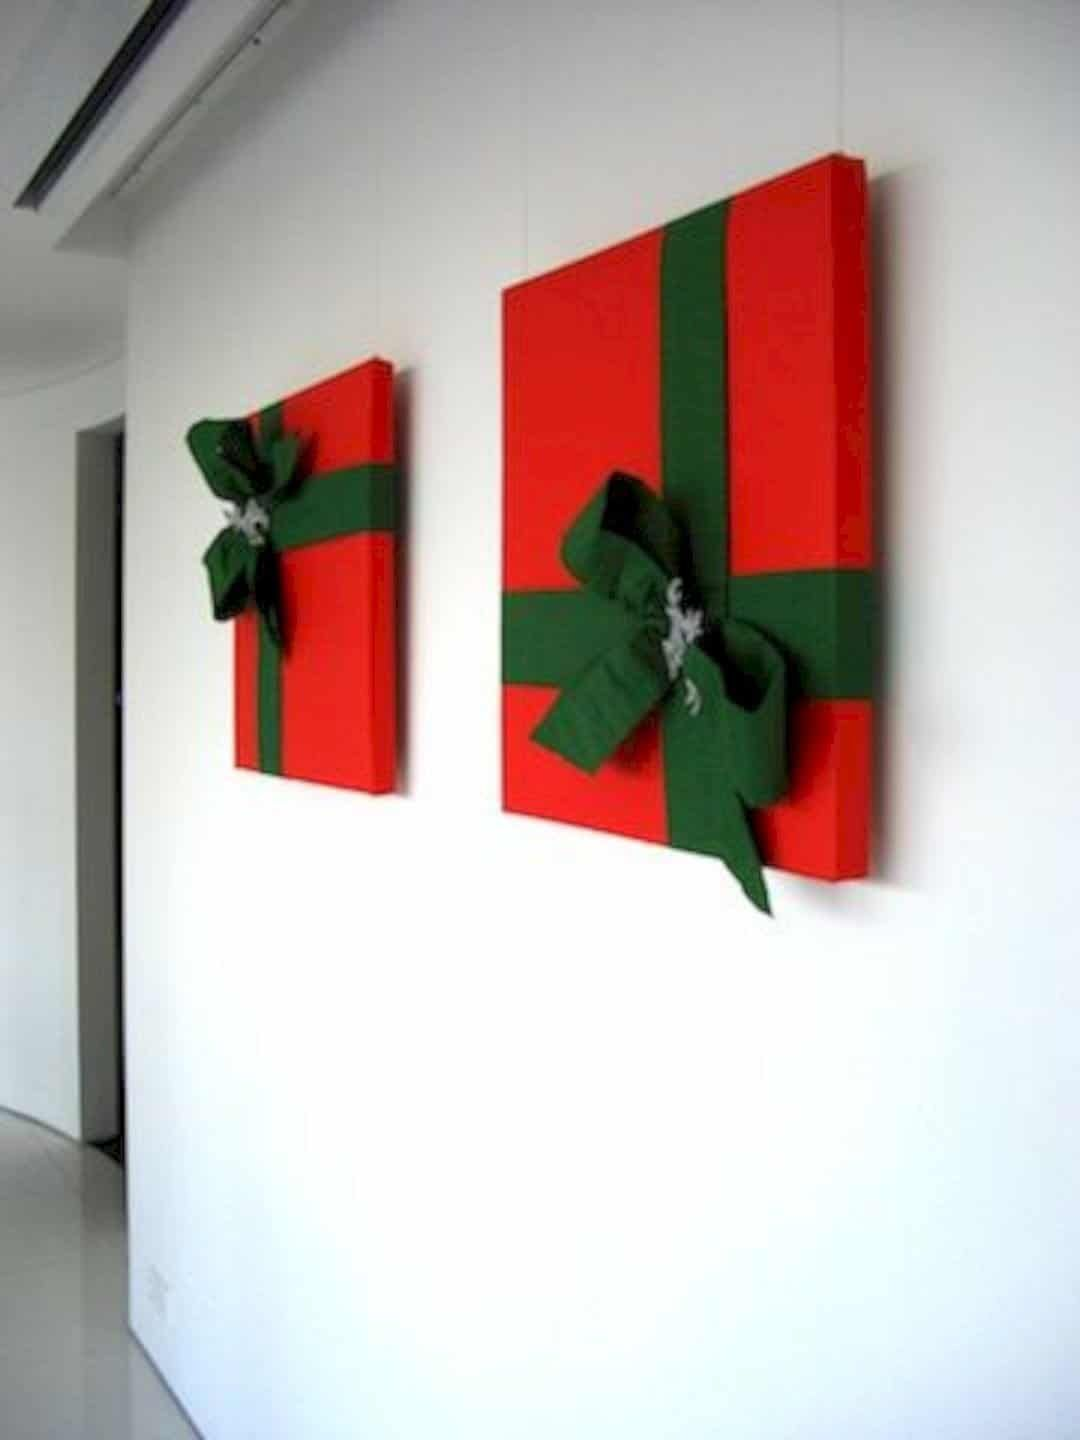 15 Christmas Wall Decorations for a More Festive Celebration